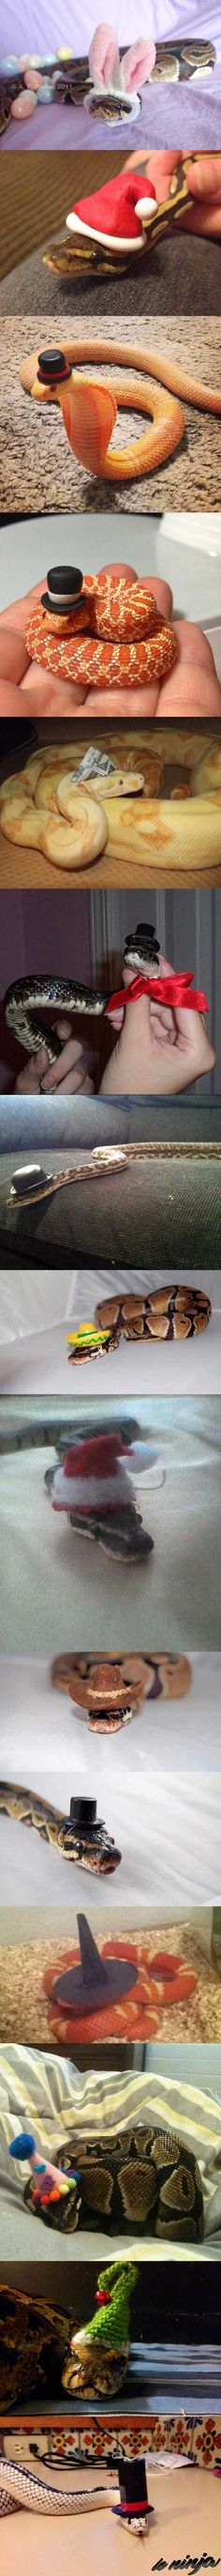 Costumed snakes - #animals #snakes #cosplay